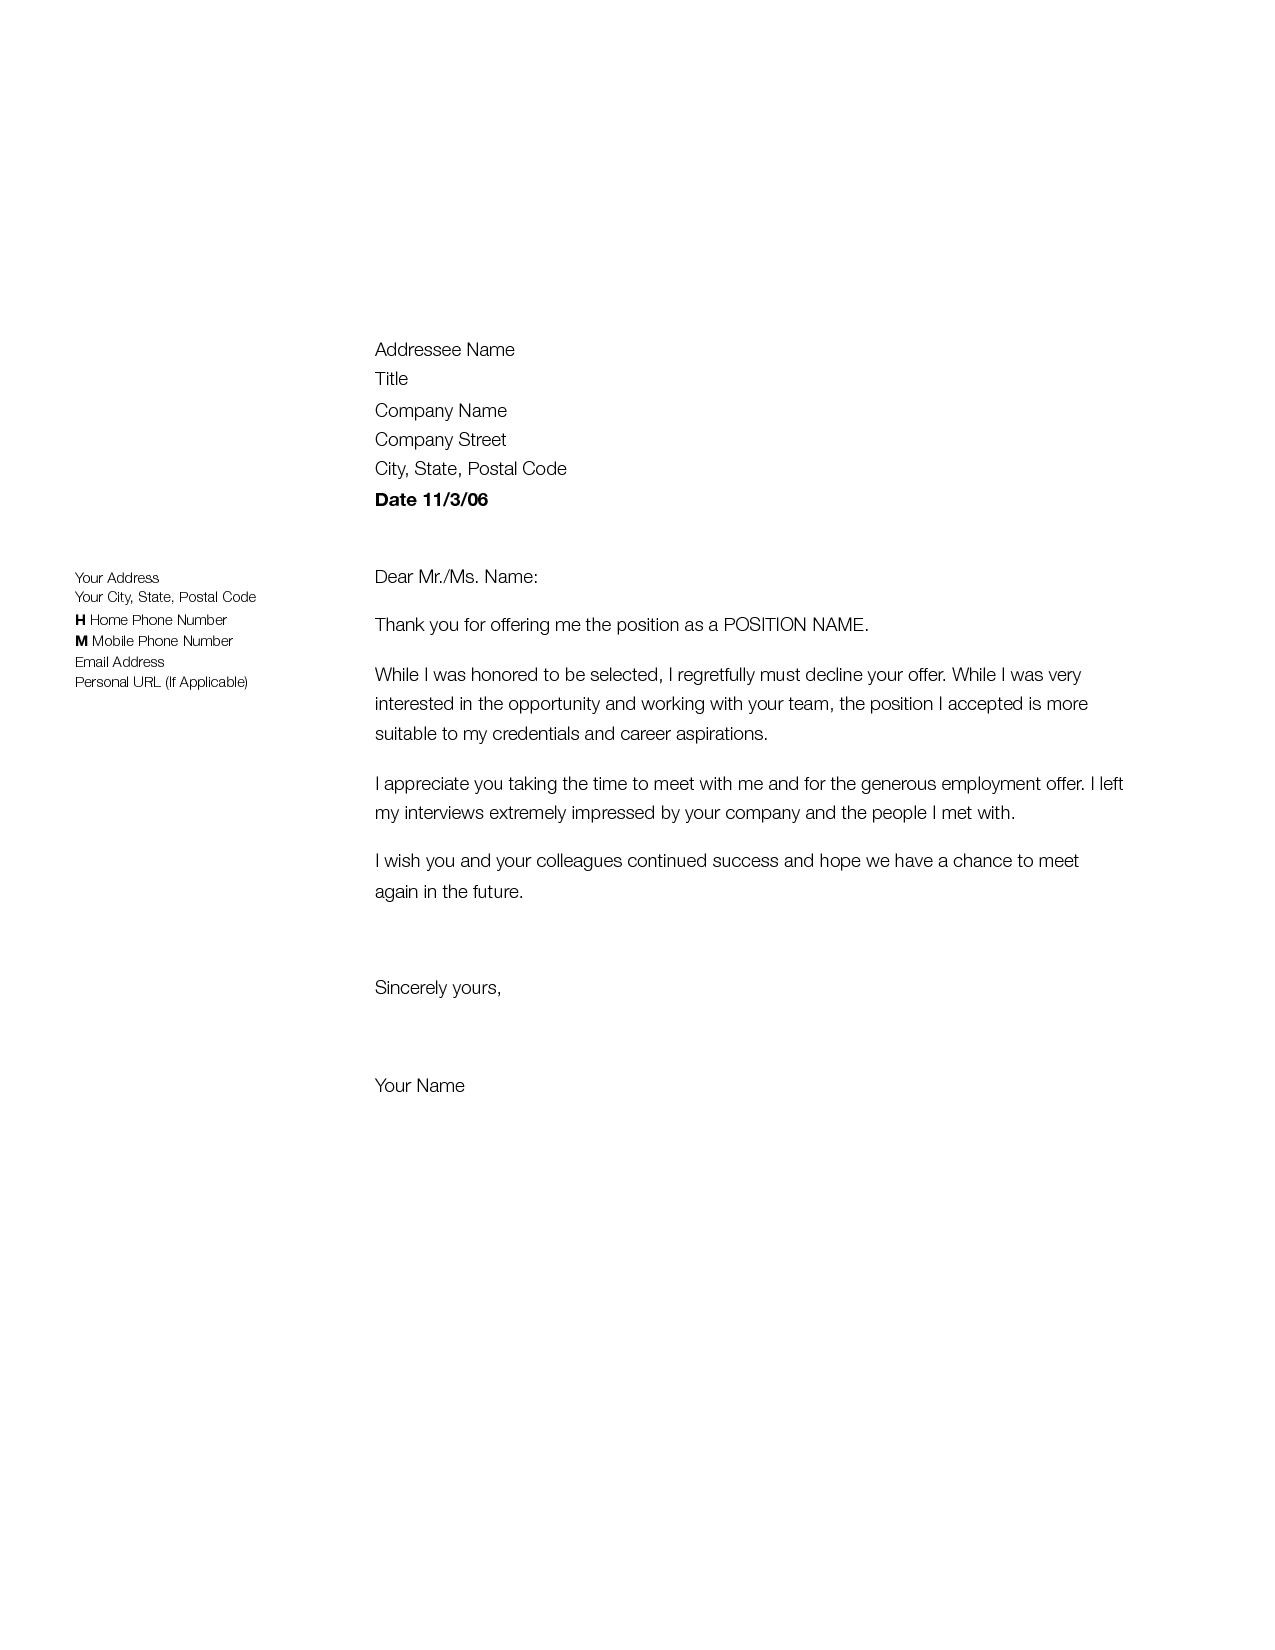 job offer rejection letter apology letter  letter